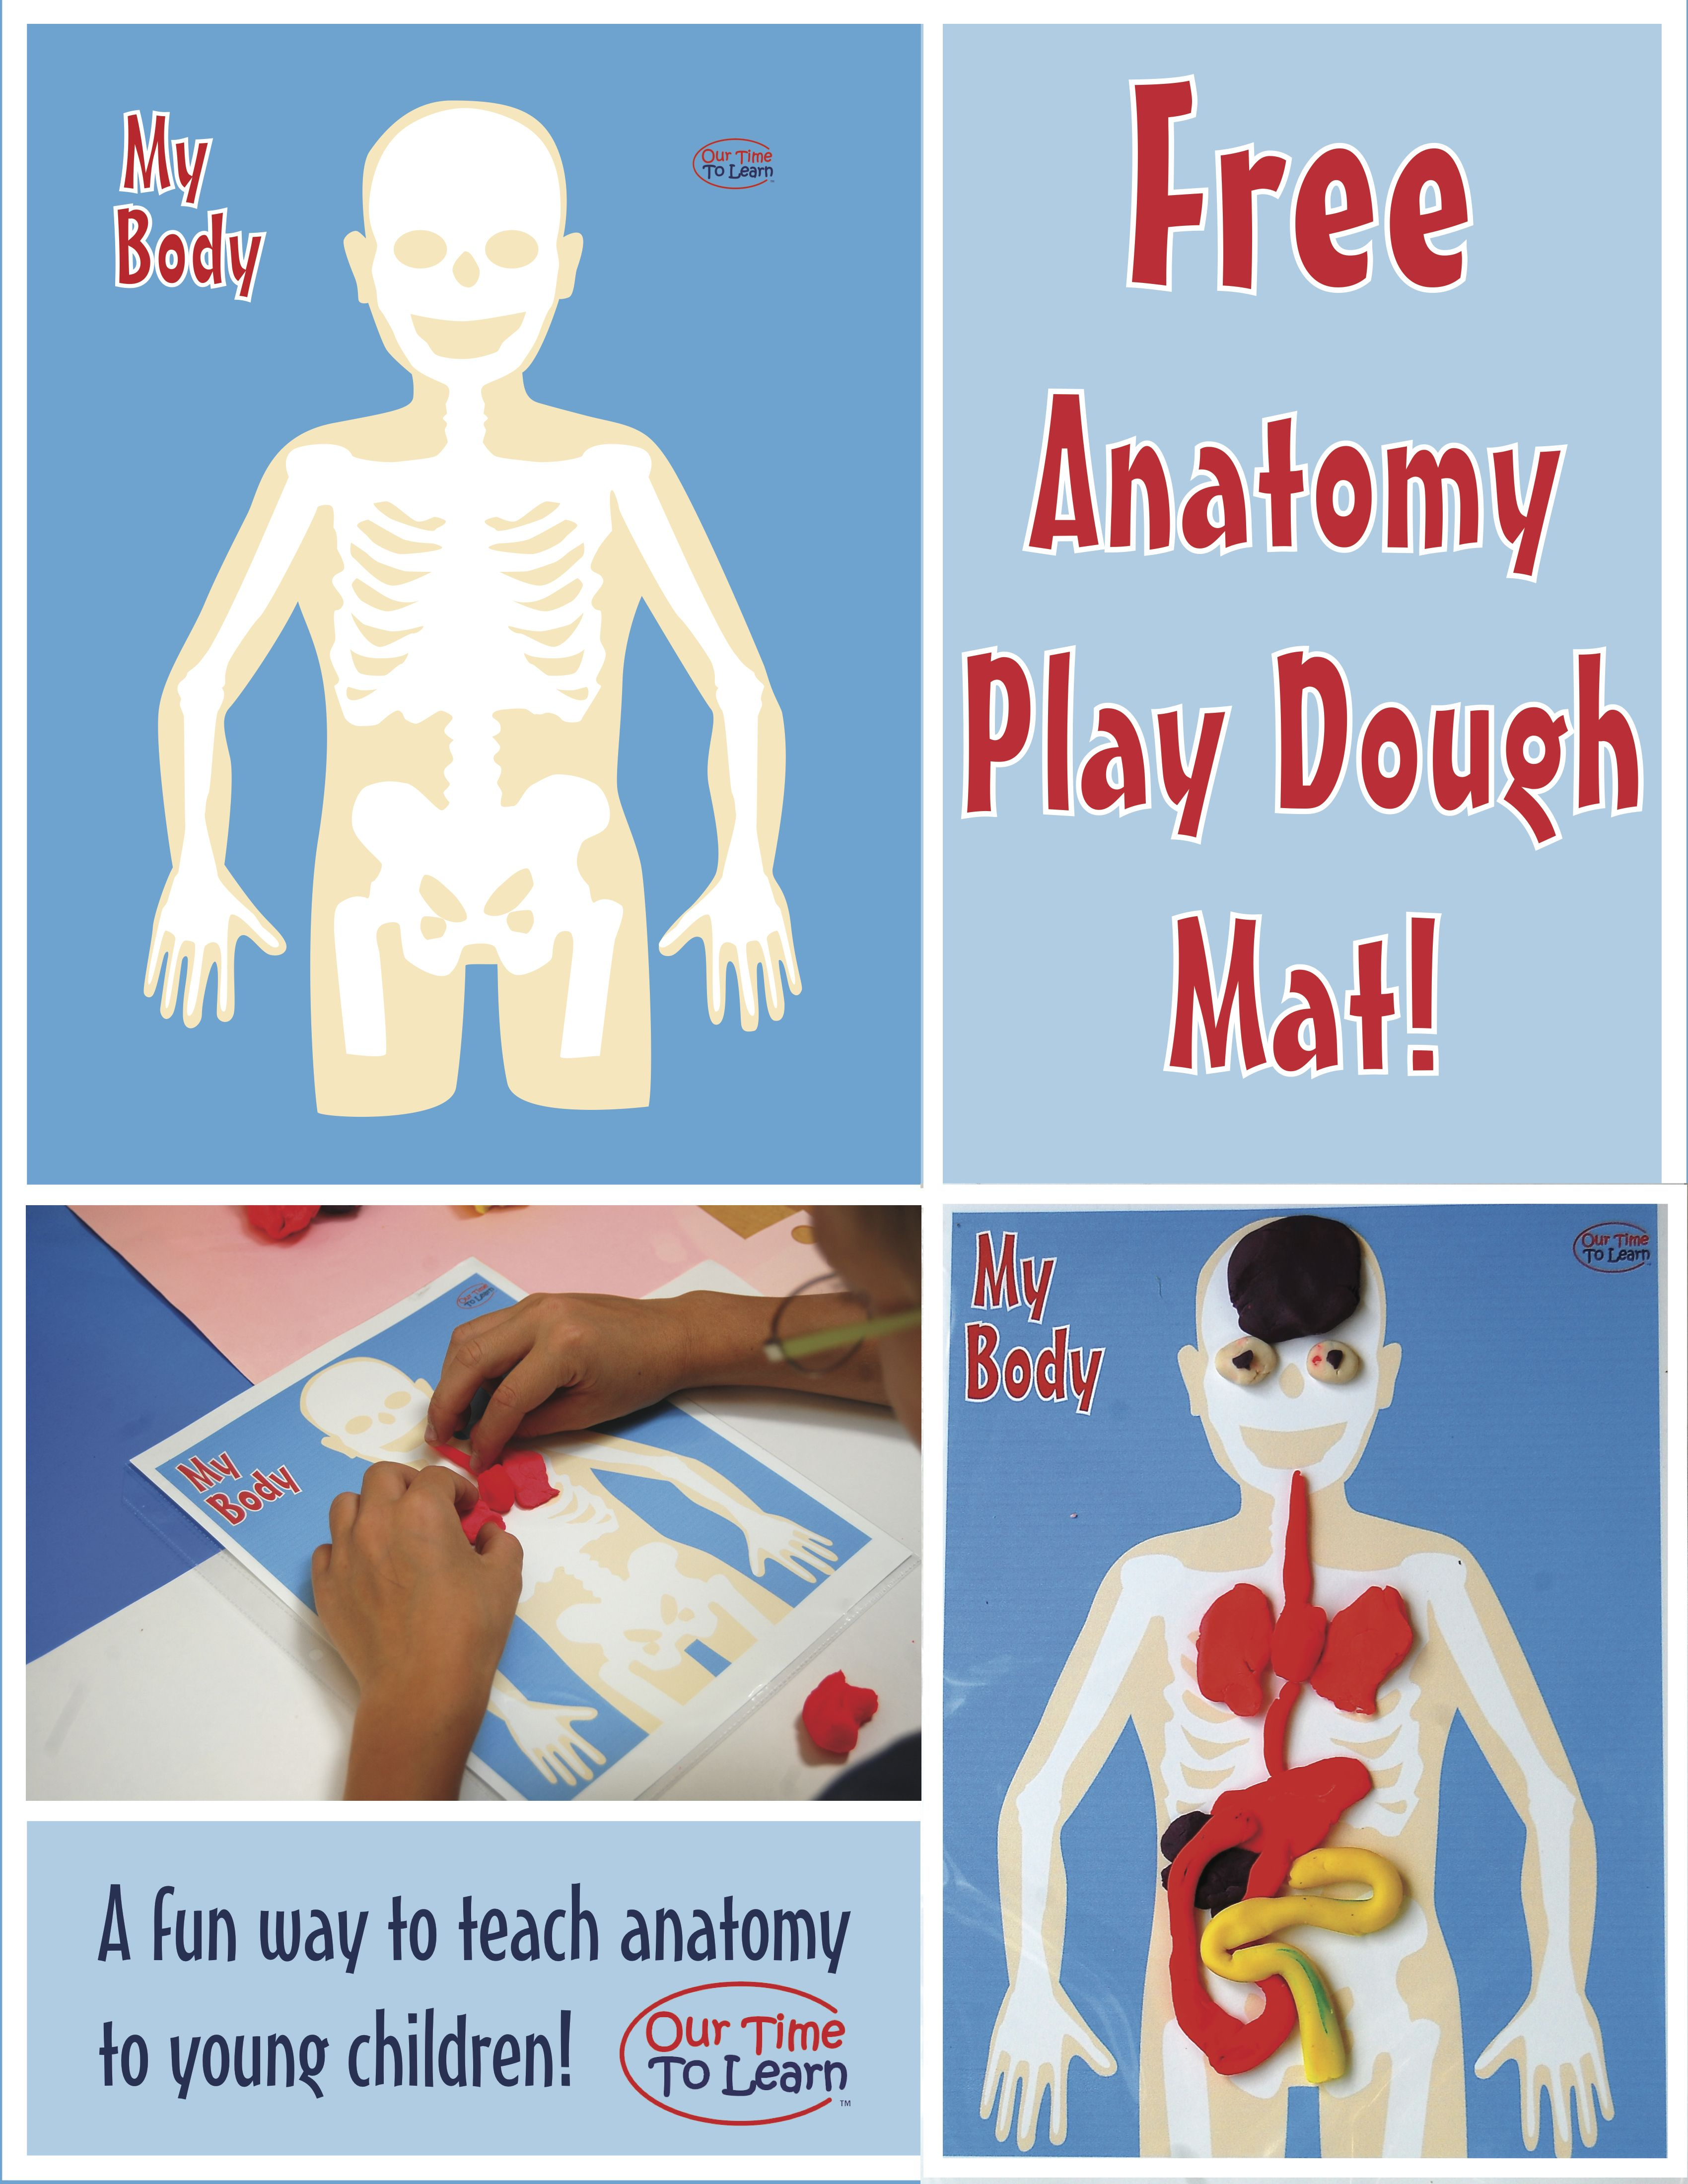 Human Bodyanatomy Teaching Tool Make Play Dough Organs And Put